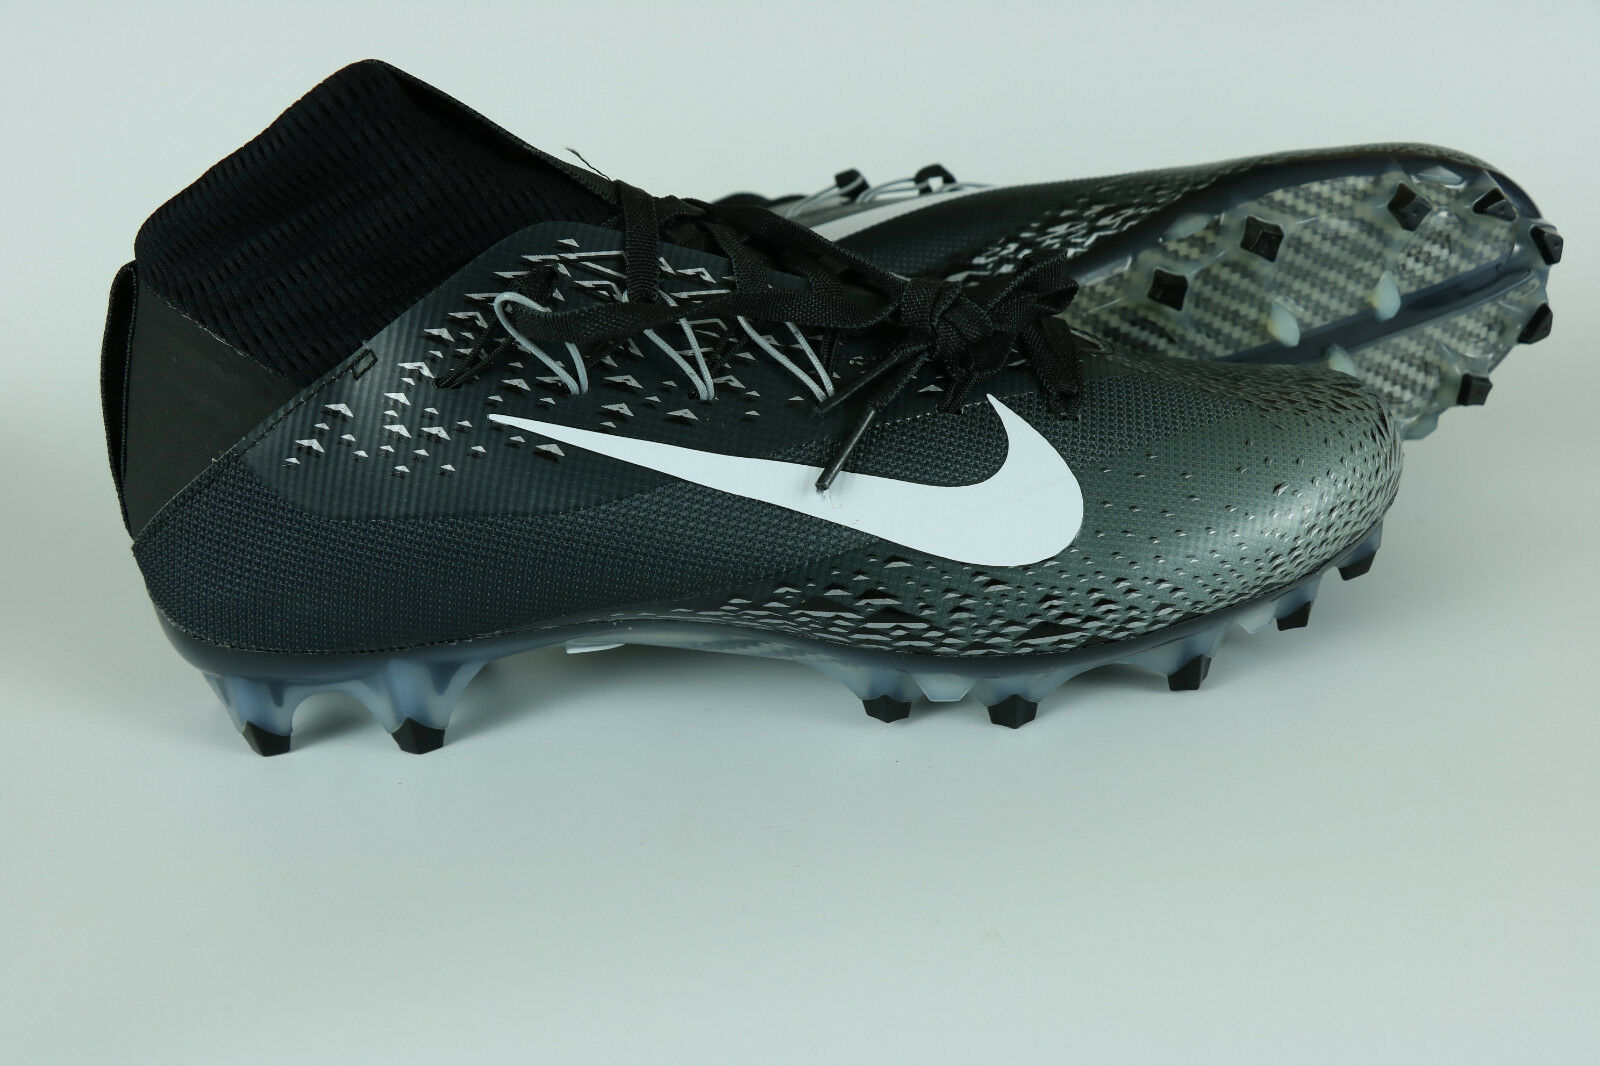 Nike Men's Vapor Untouchable 2 Black & Grey Football Cleats 824470 001 10-12